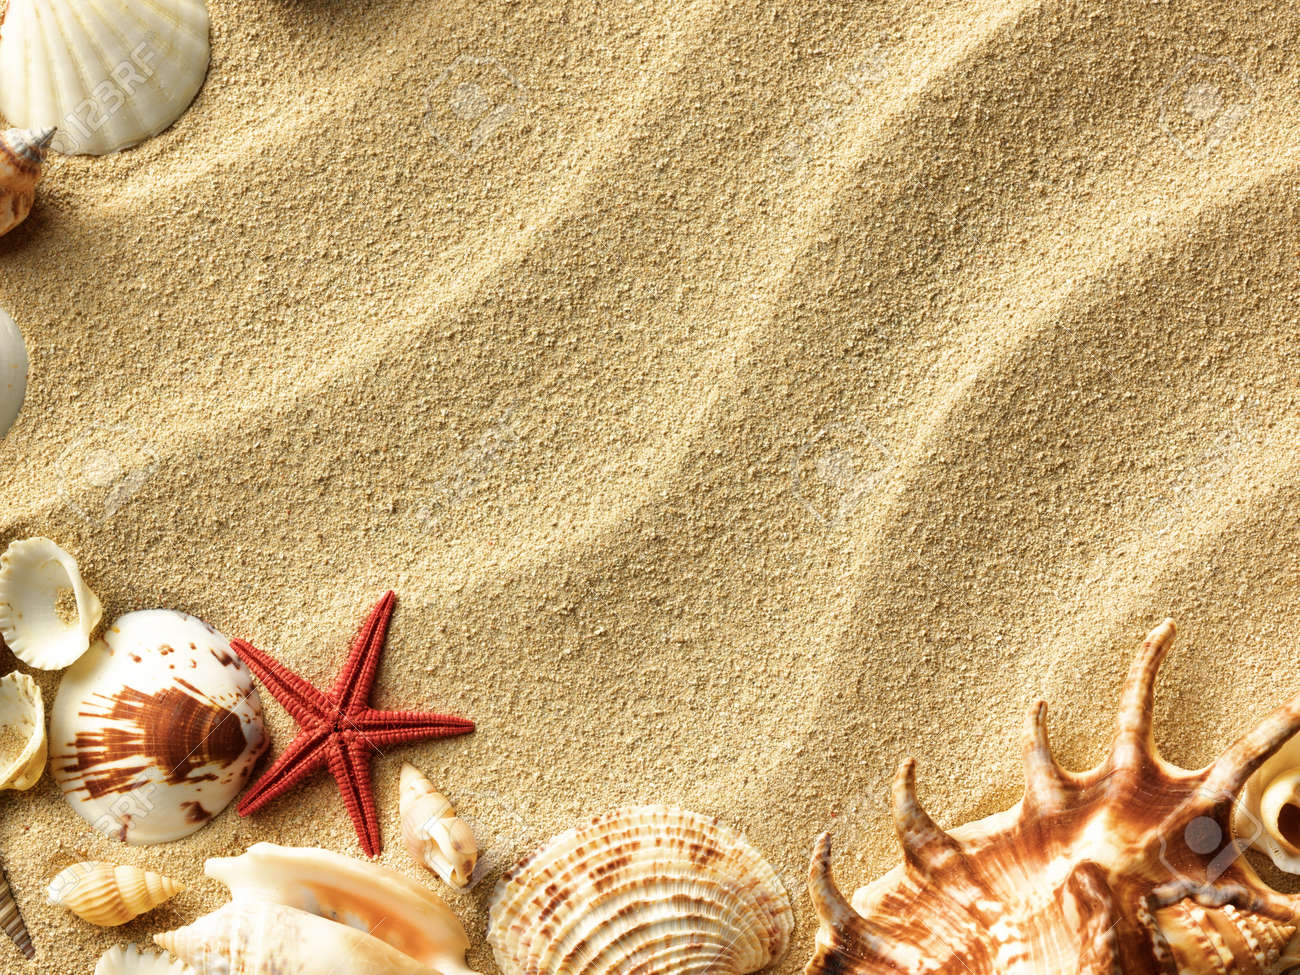 Sea Shells With Sand As Background Stock Photo, Picture And ...